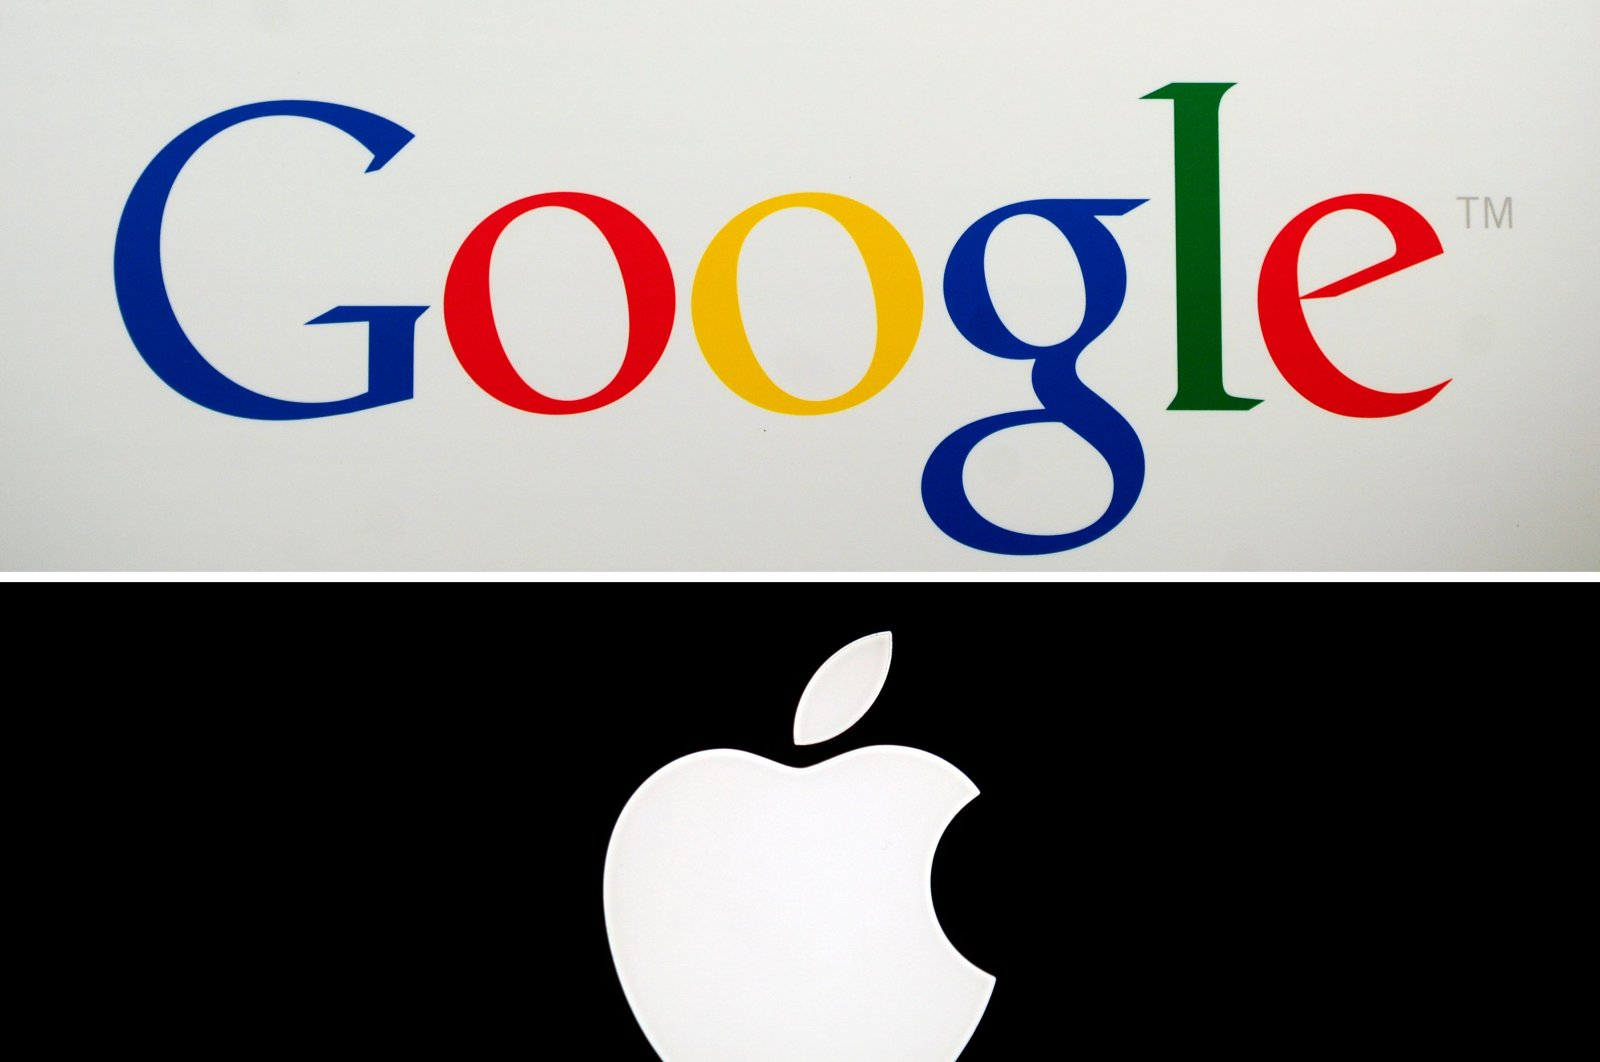 In this combo file photo taken on May 17, 2014, shows Google's logo (top) in New York on May 21, 2012, and Apple's logo in Paris on January 27, 2010. (AFP Photo)